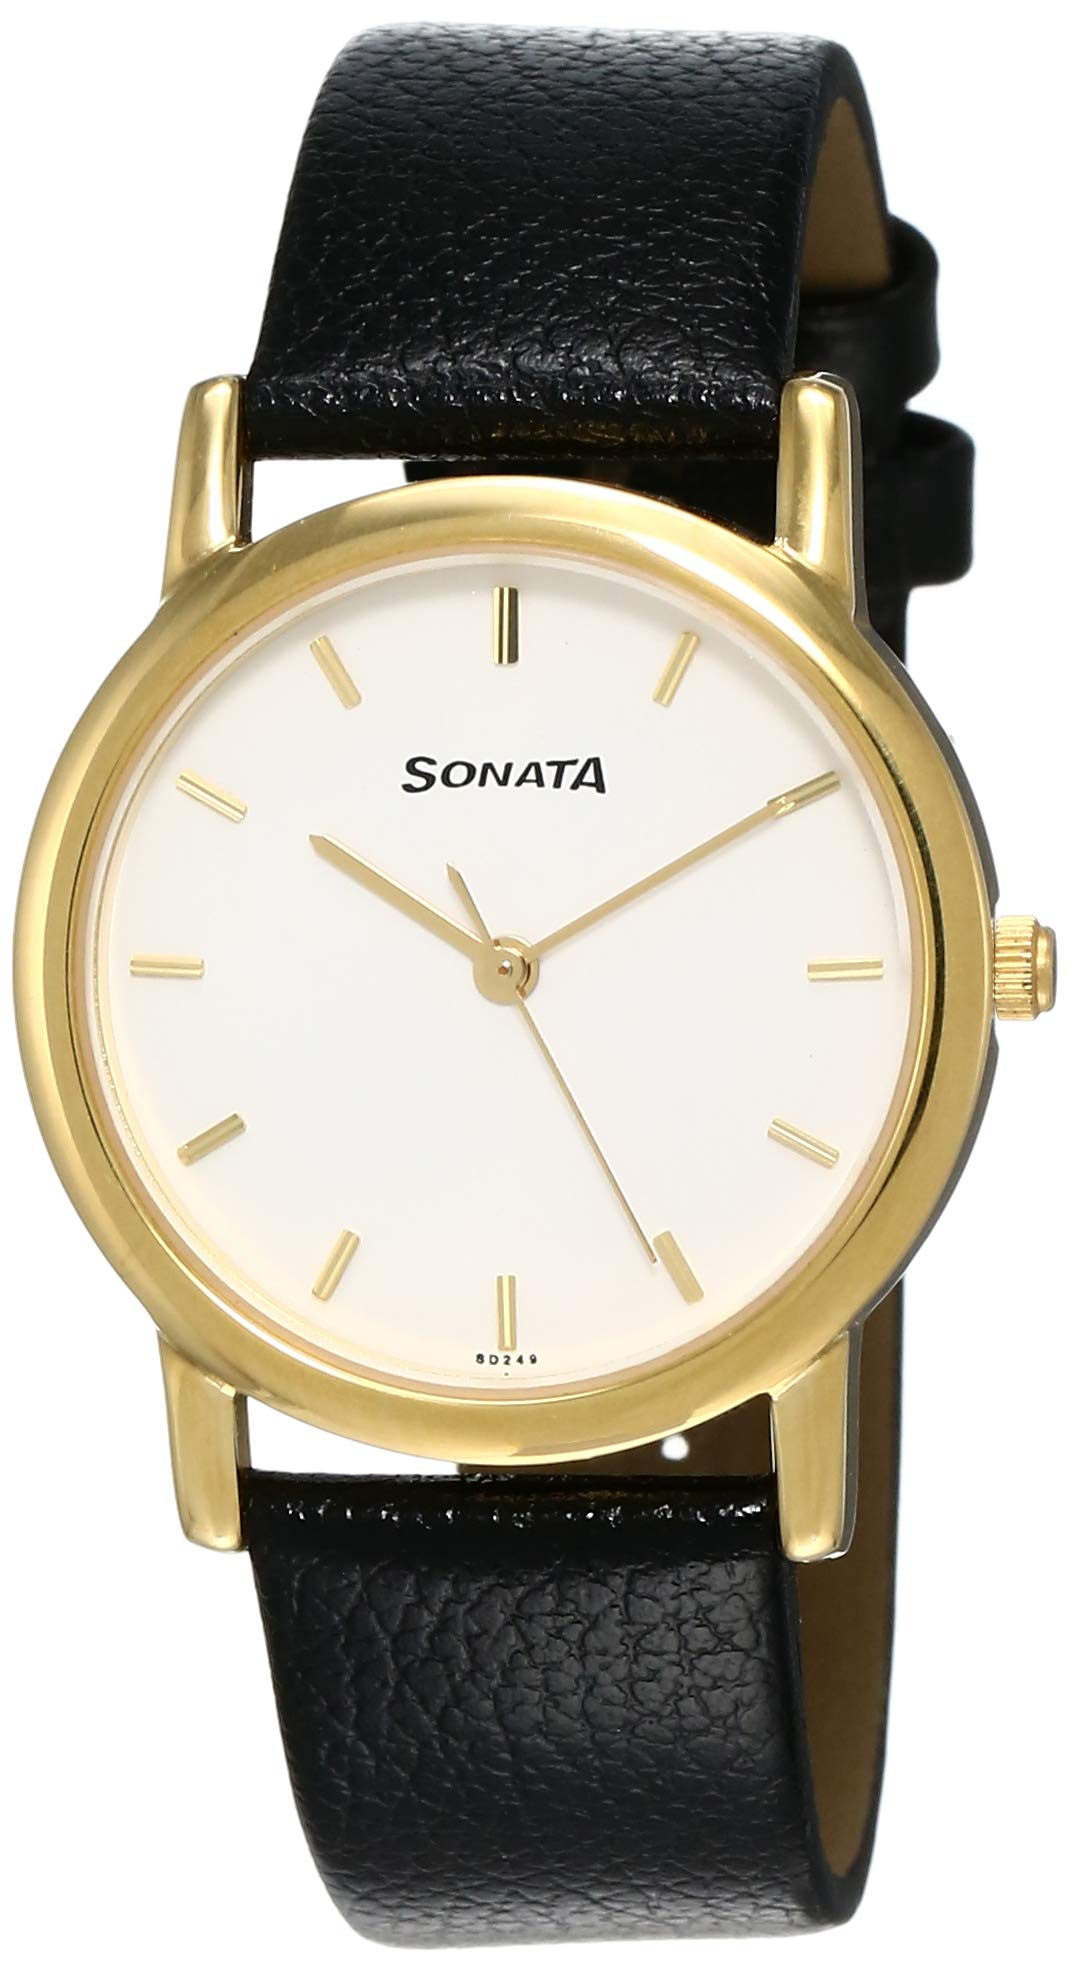 Sonata Analog White Dial Men's Watch -NJ7987YL02W product image